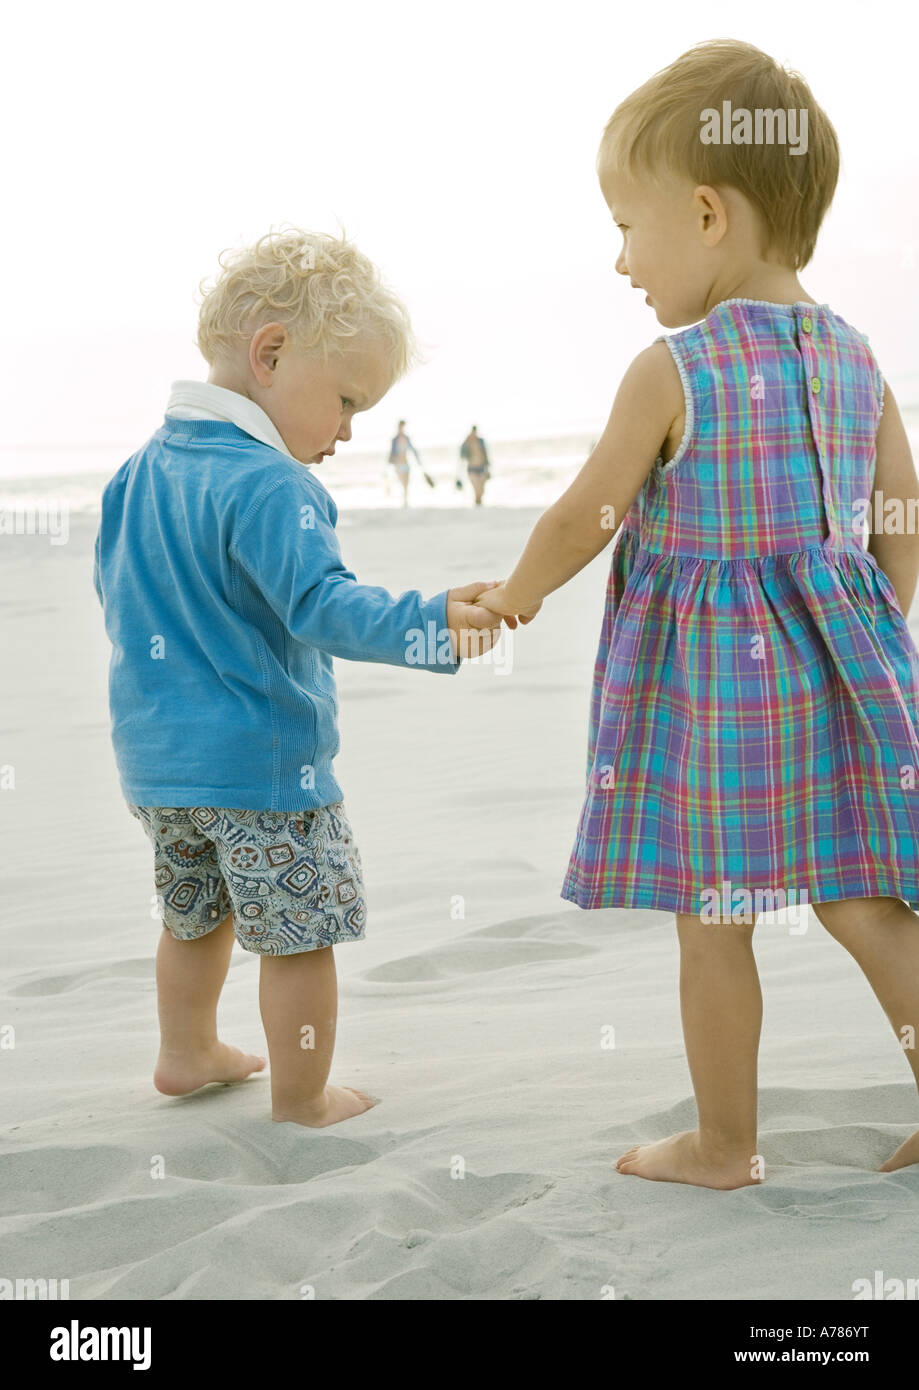 Two toddlers standing on beach, rear view - Stock Image